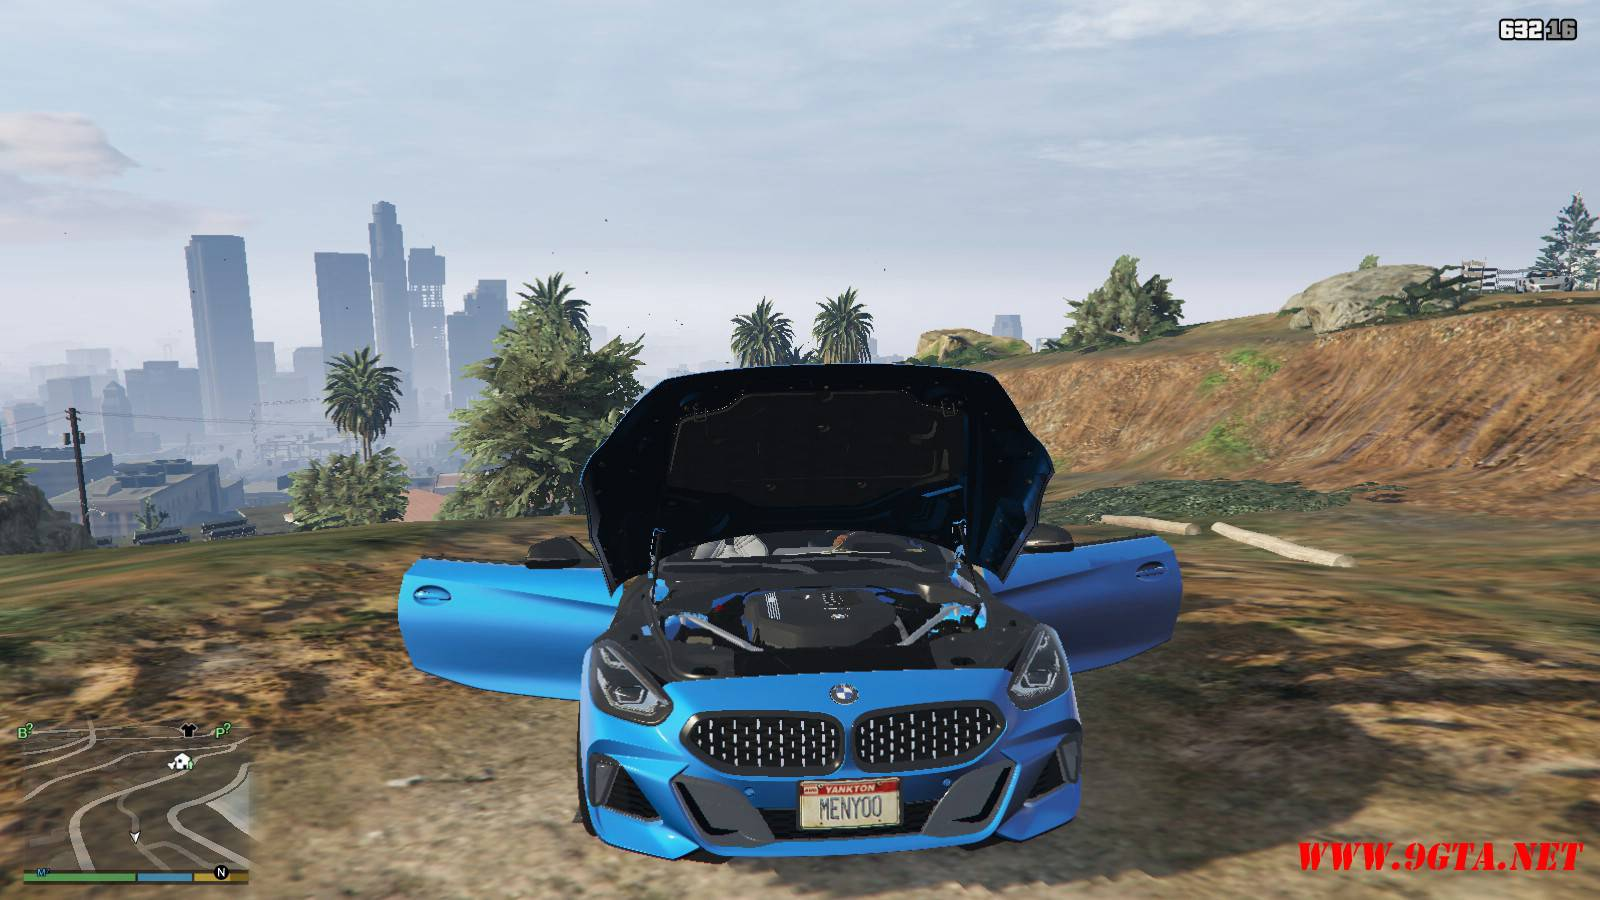 2019 BMW Z4 M40i v2.0 Mod For GTA5 (13)